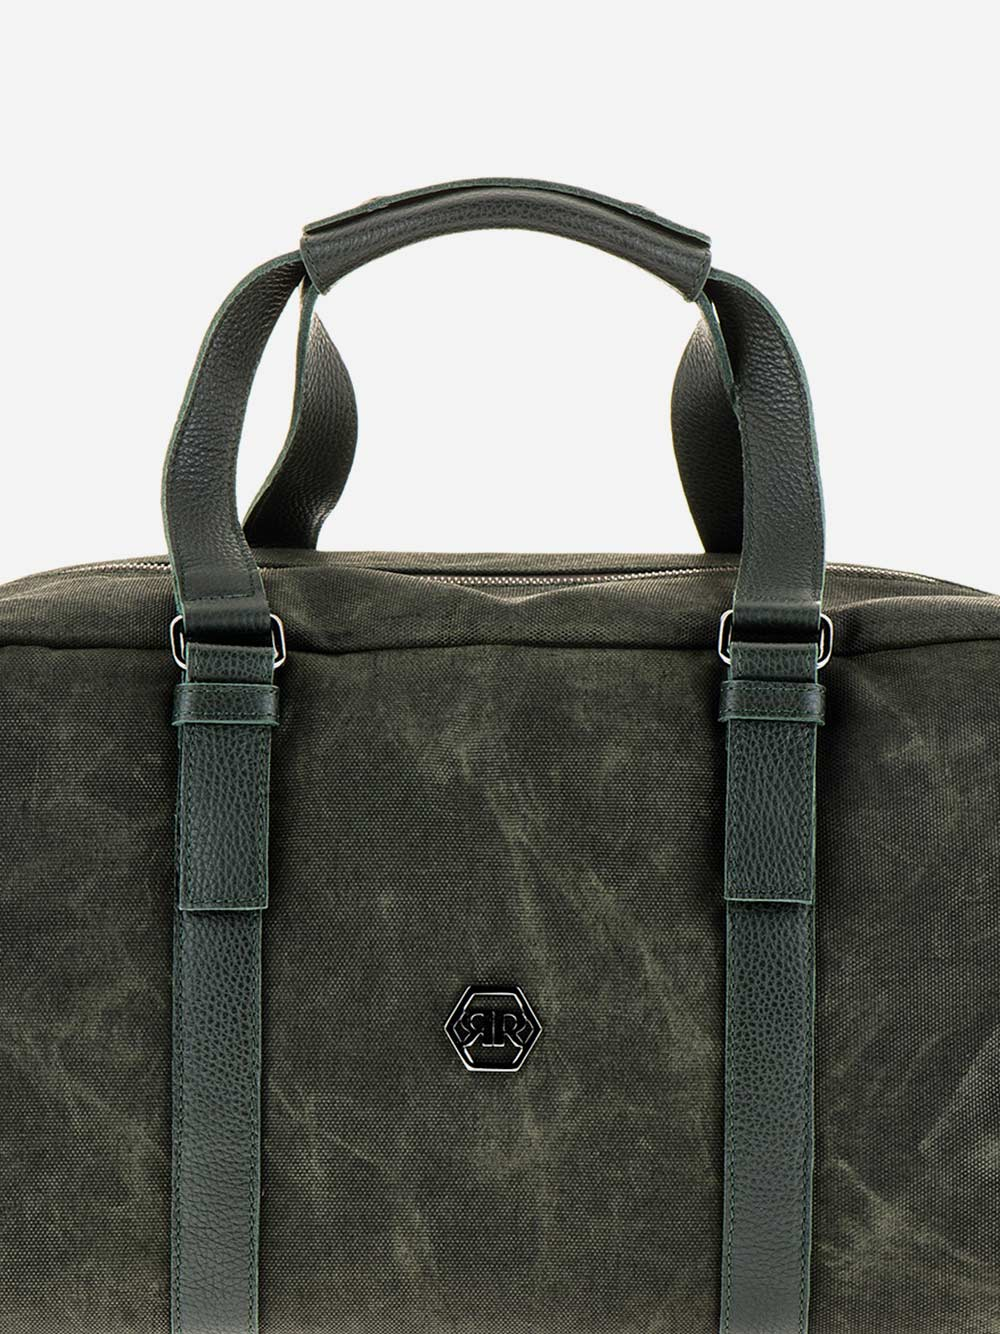 Green Nylon Weekend Bag